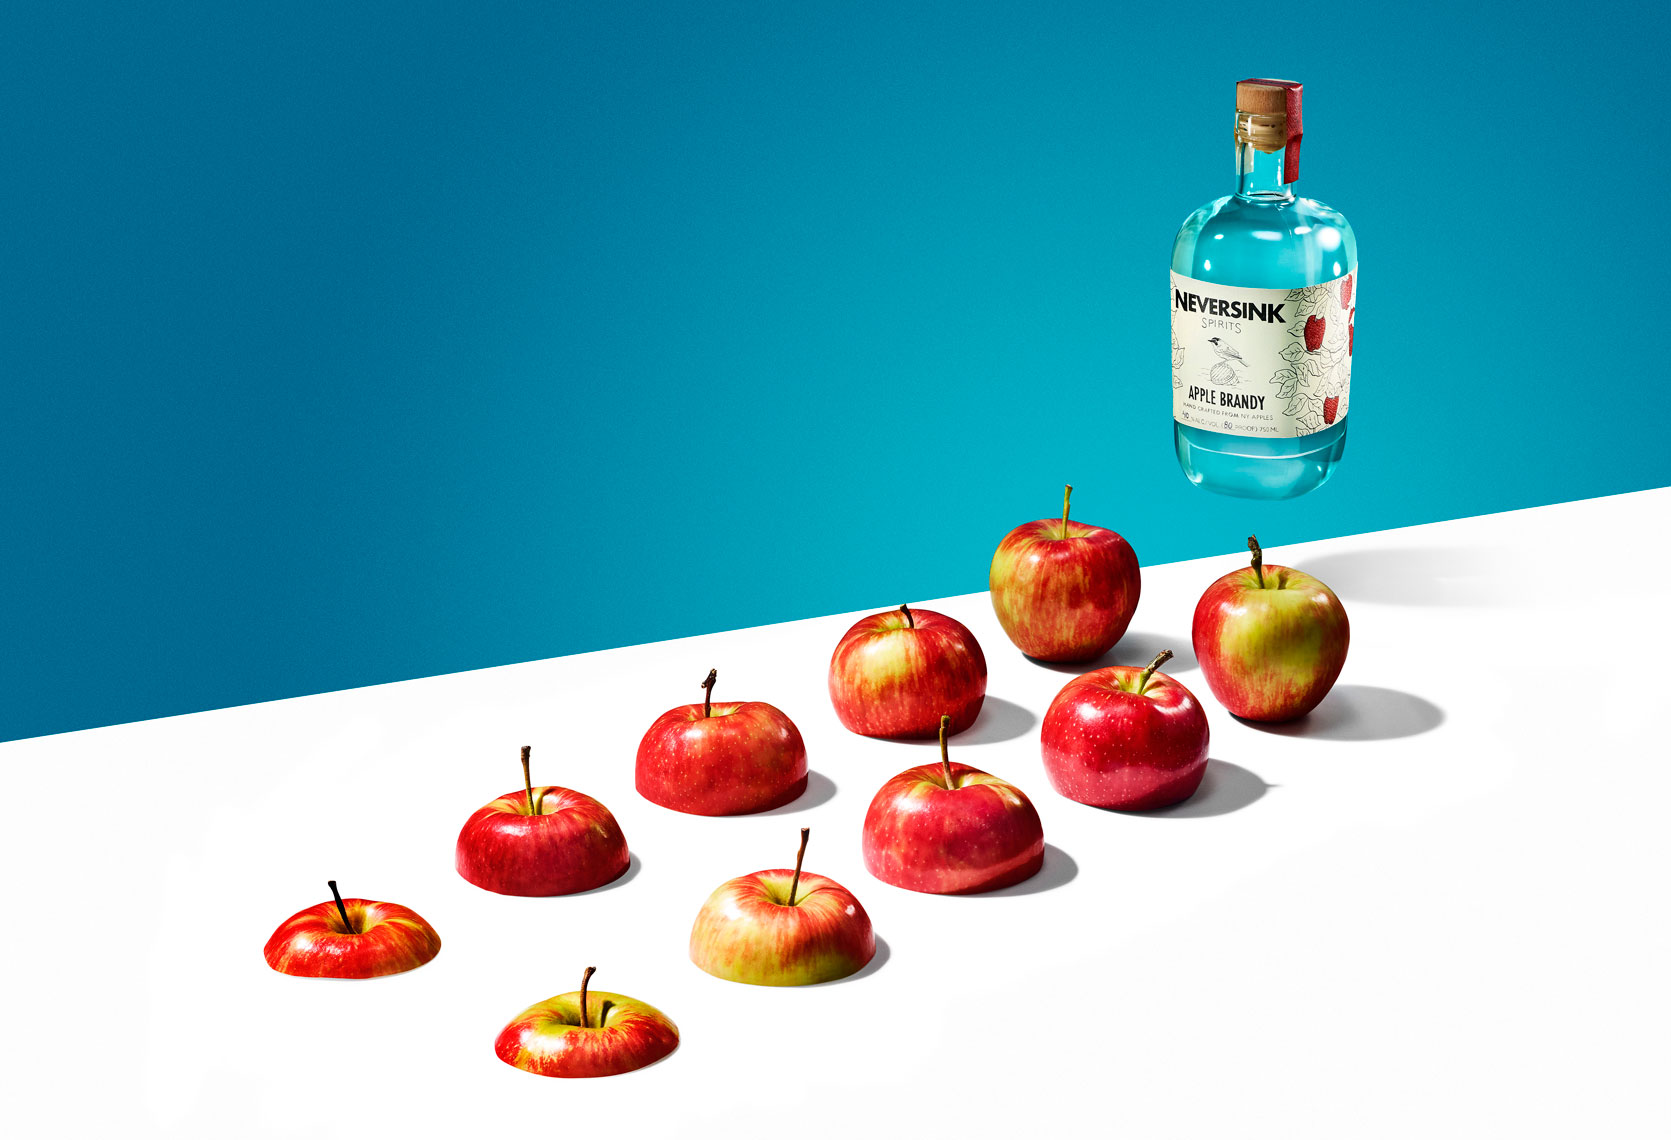 neversink_apple_brandy_arranged_v1